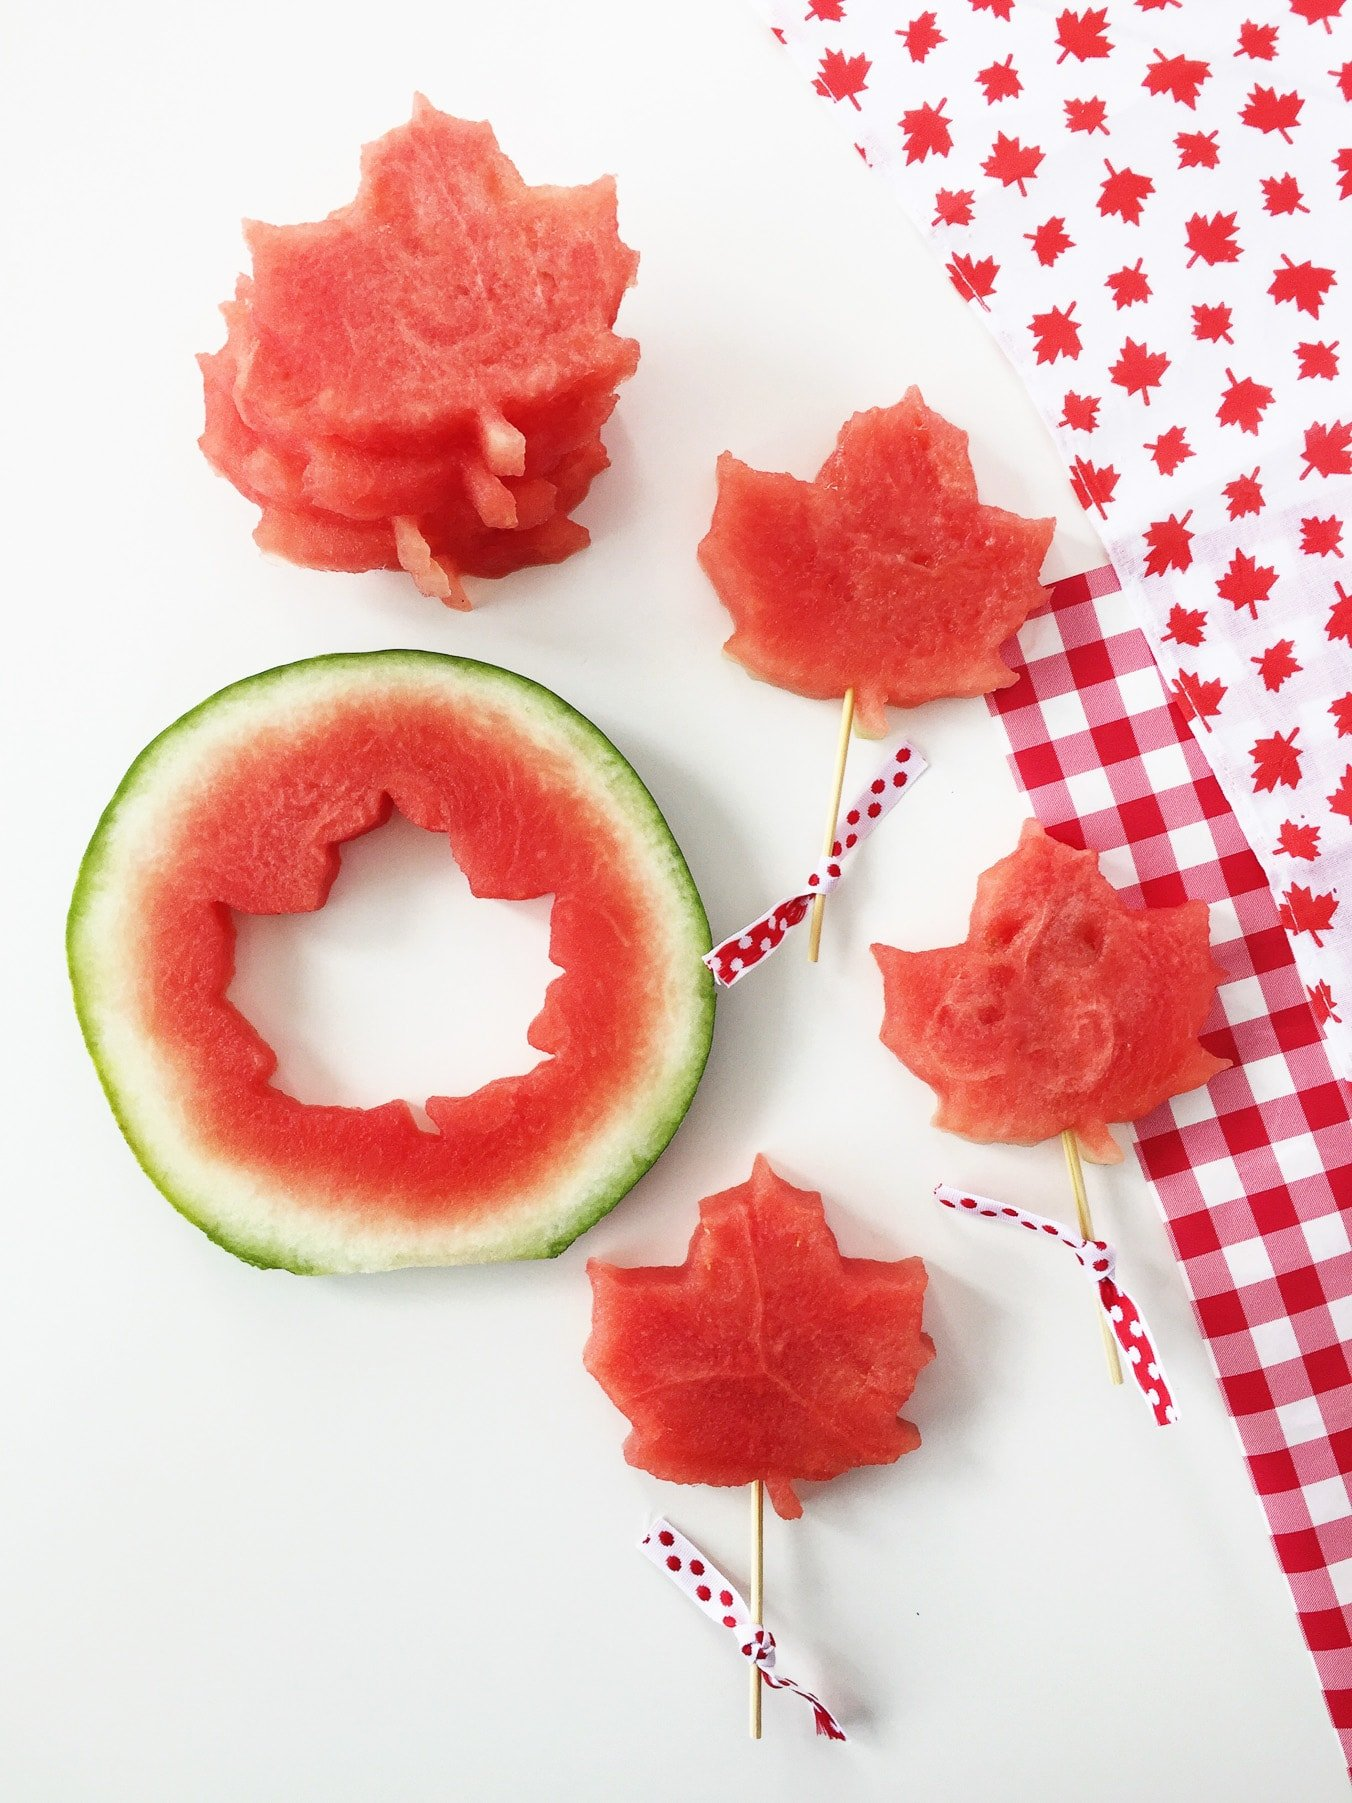 Canada Day Party: Maple Leaf Shaped Watermelon